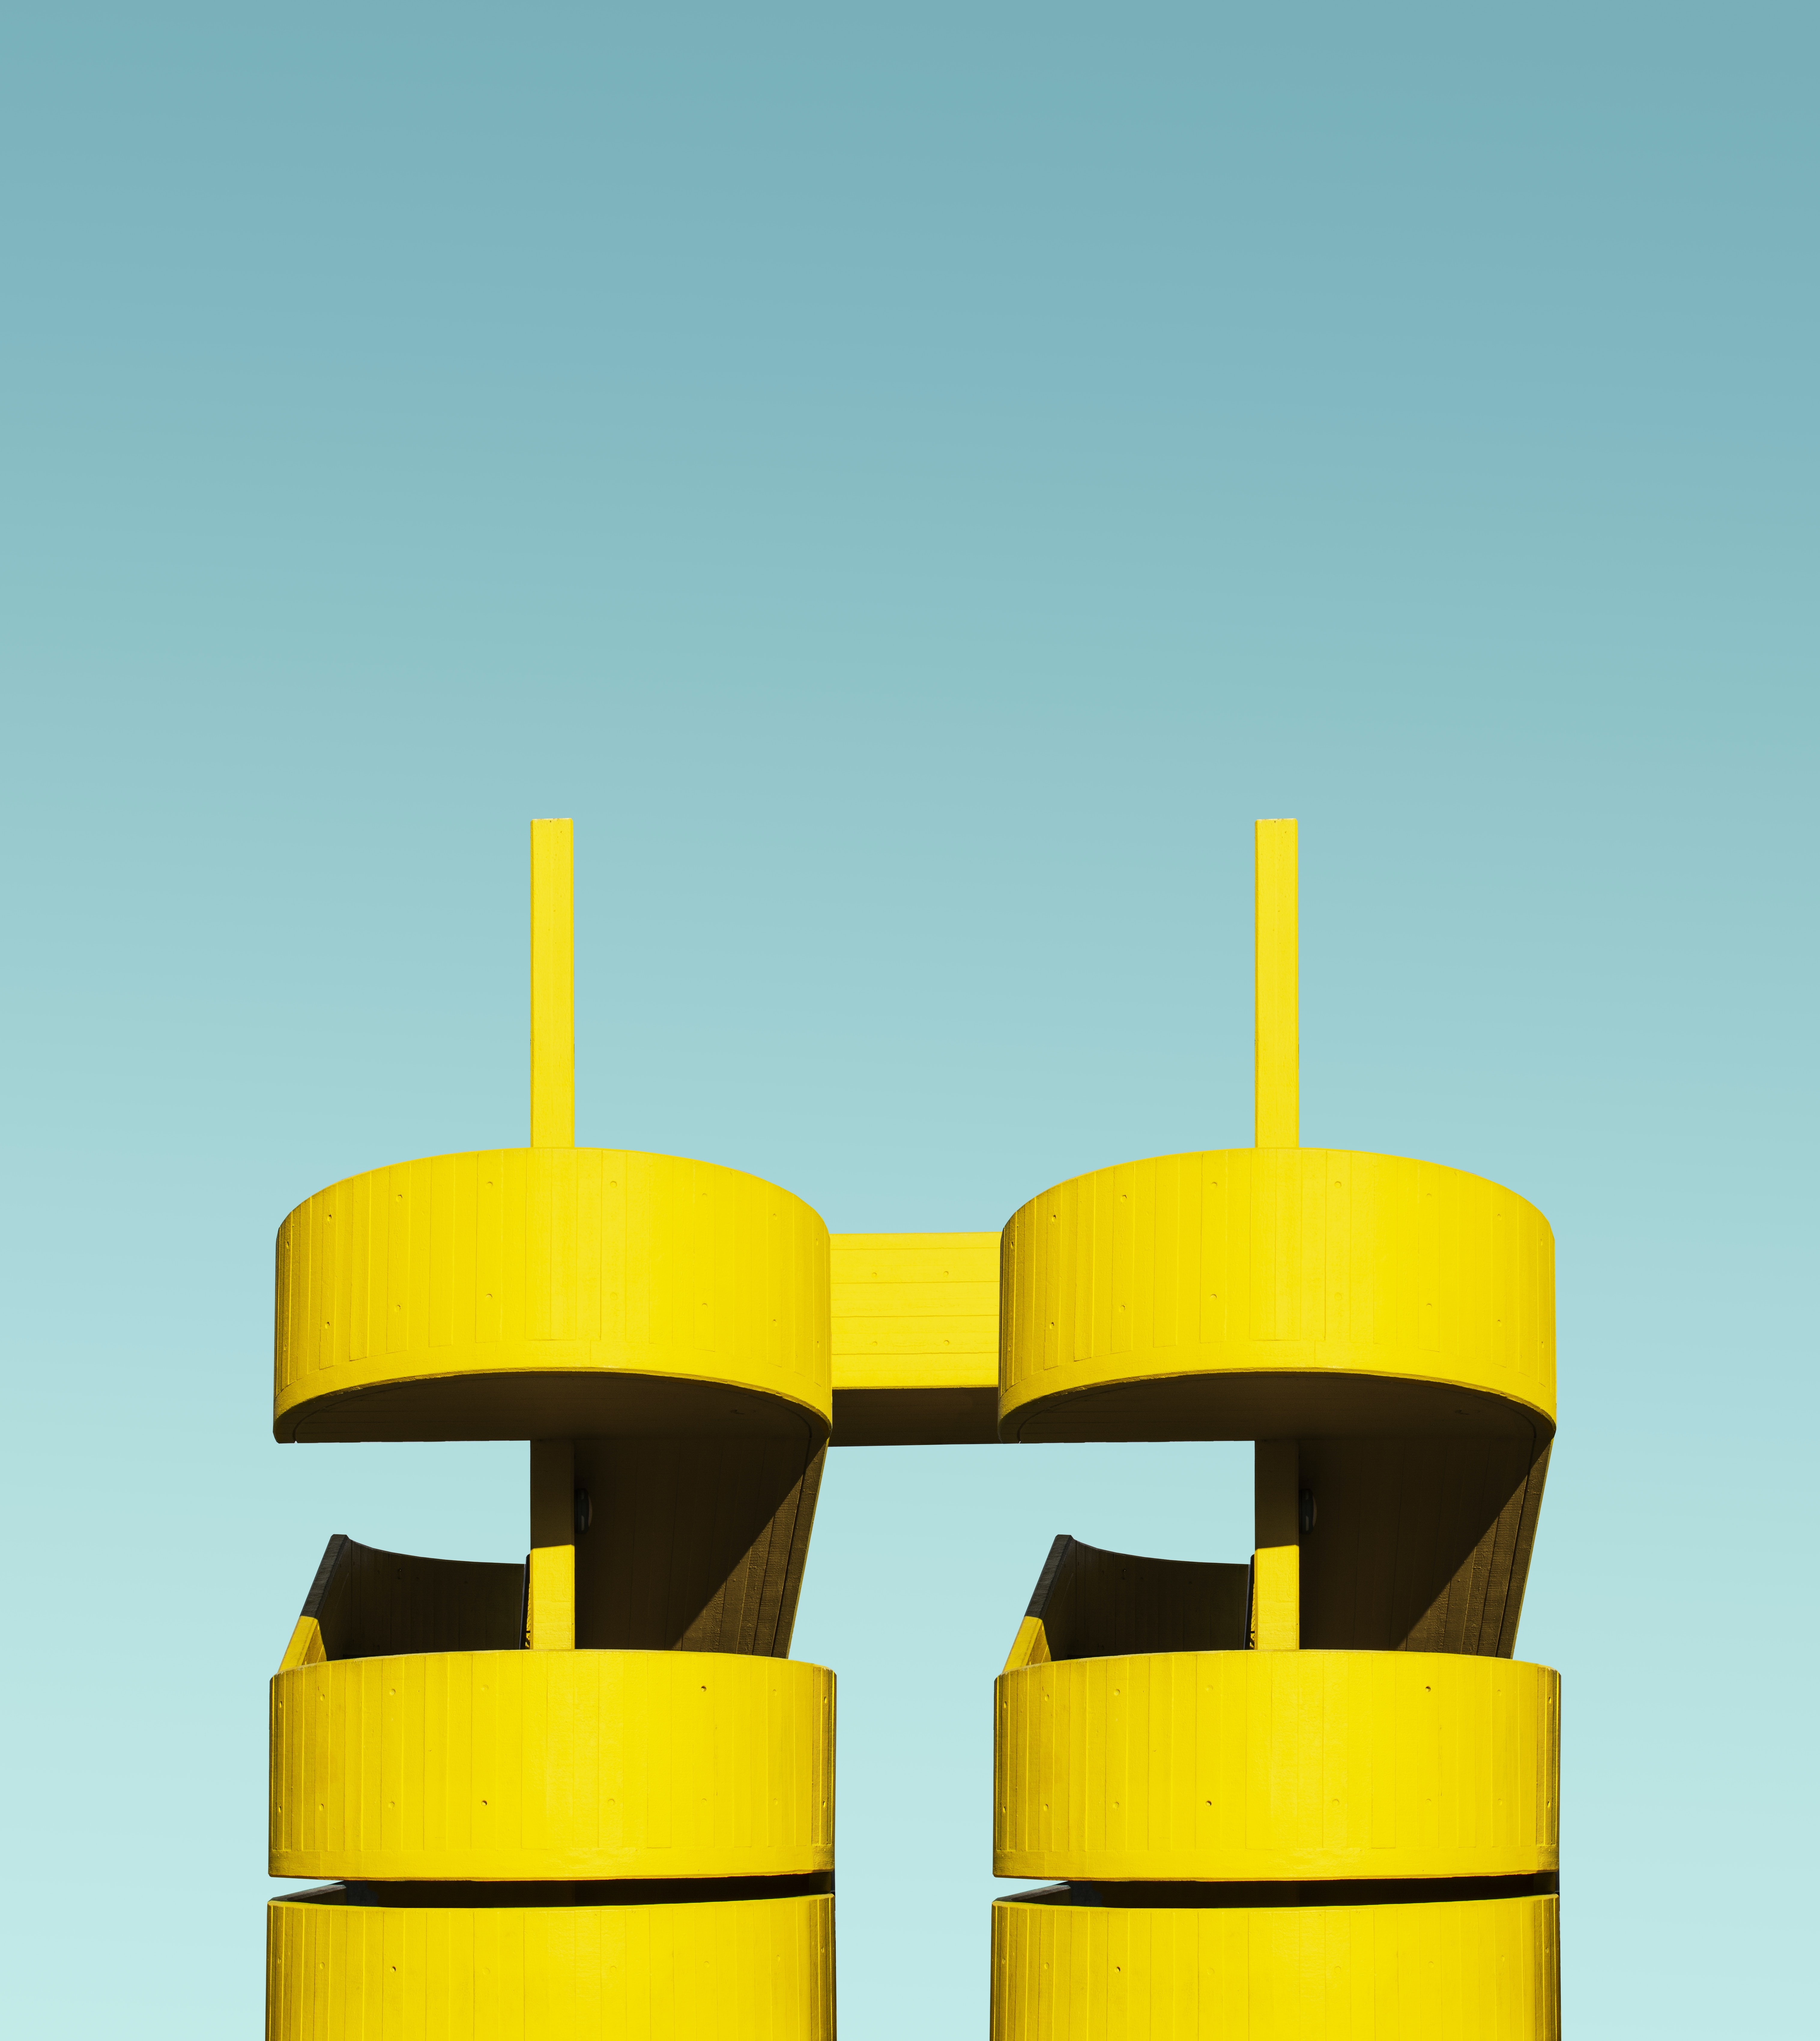 two yellow pilar towers close-up photography